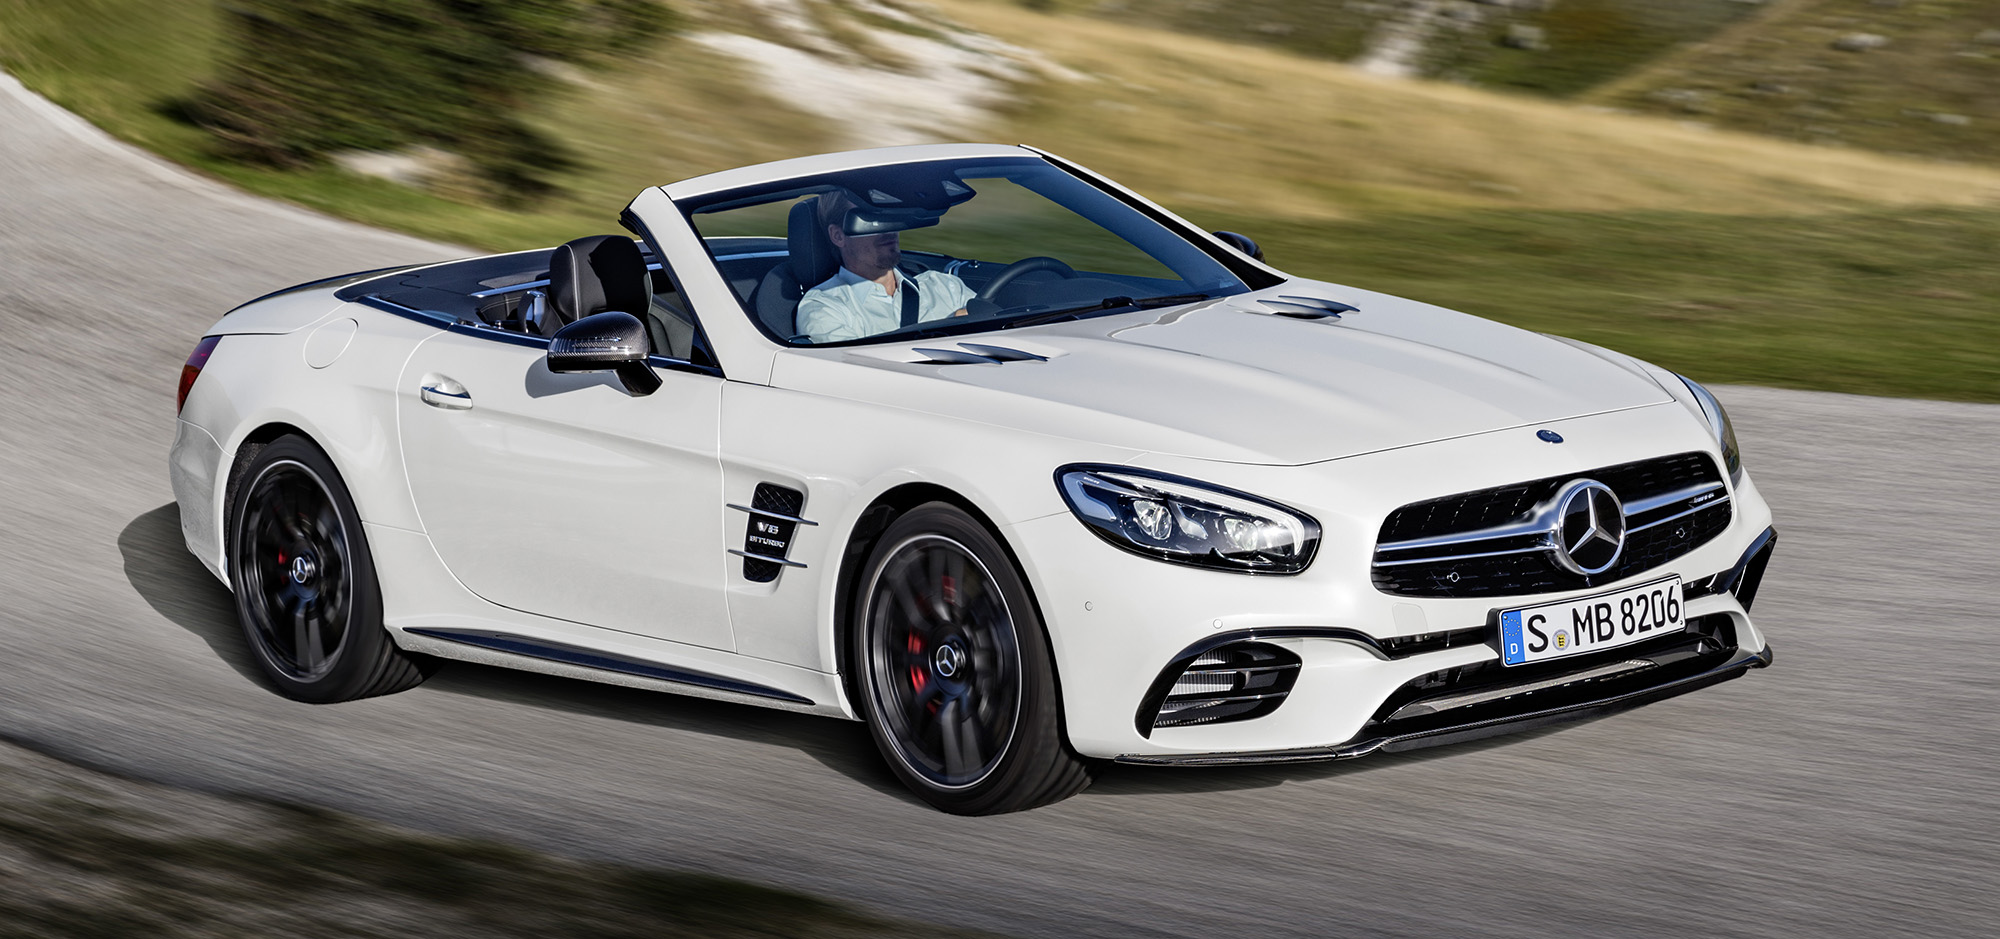 Mercedes-AMG SL73 2021 can get over 800 horsepower